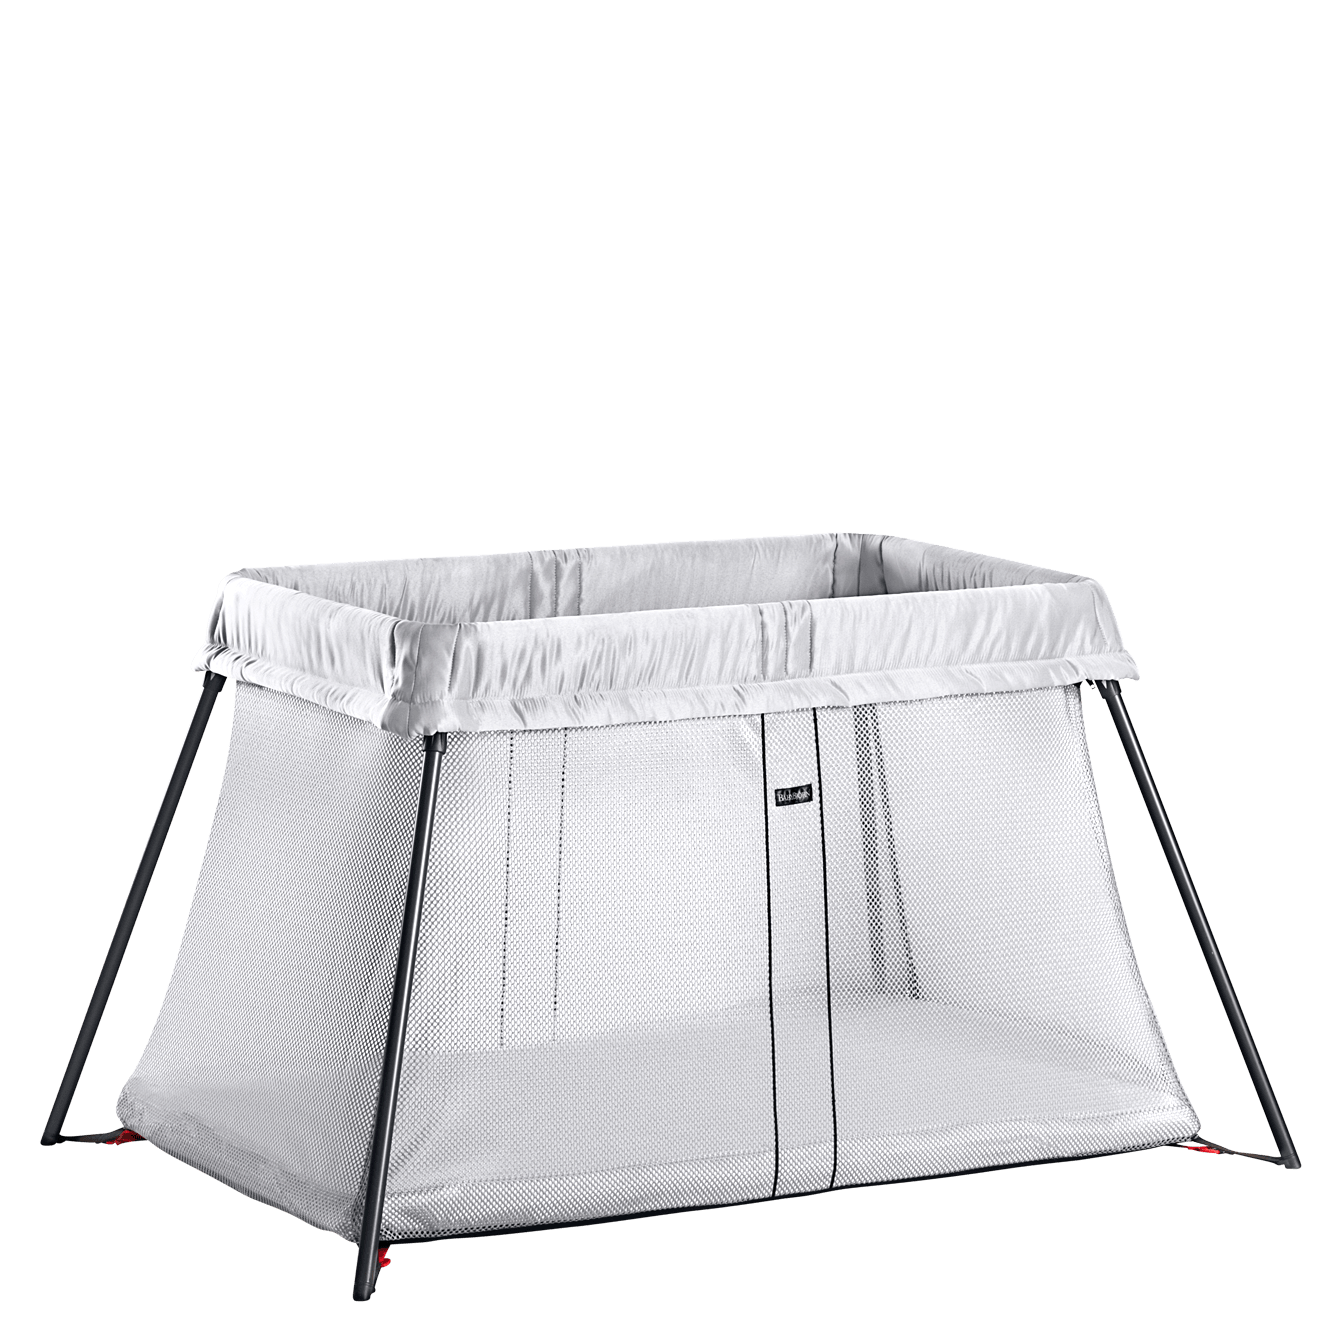 BABYBJÖRN Reisebett Light Silber 040248 category